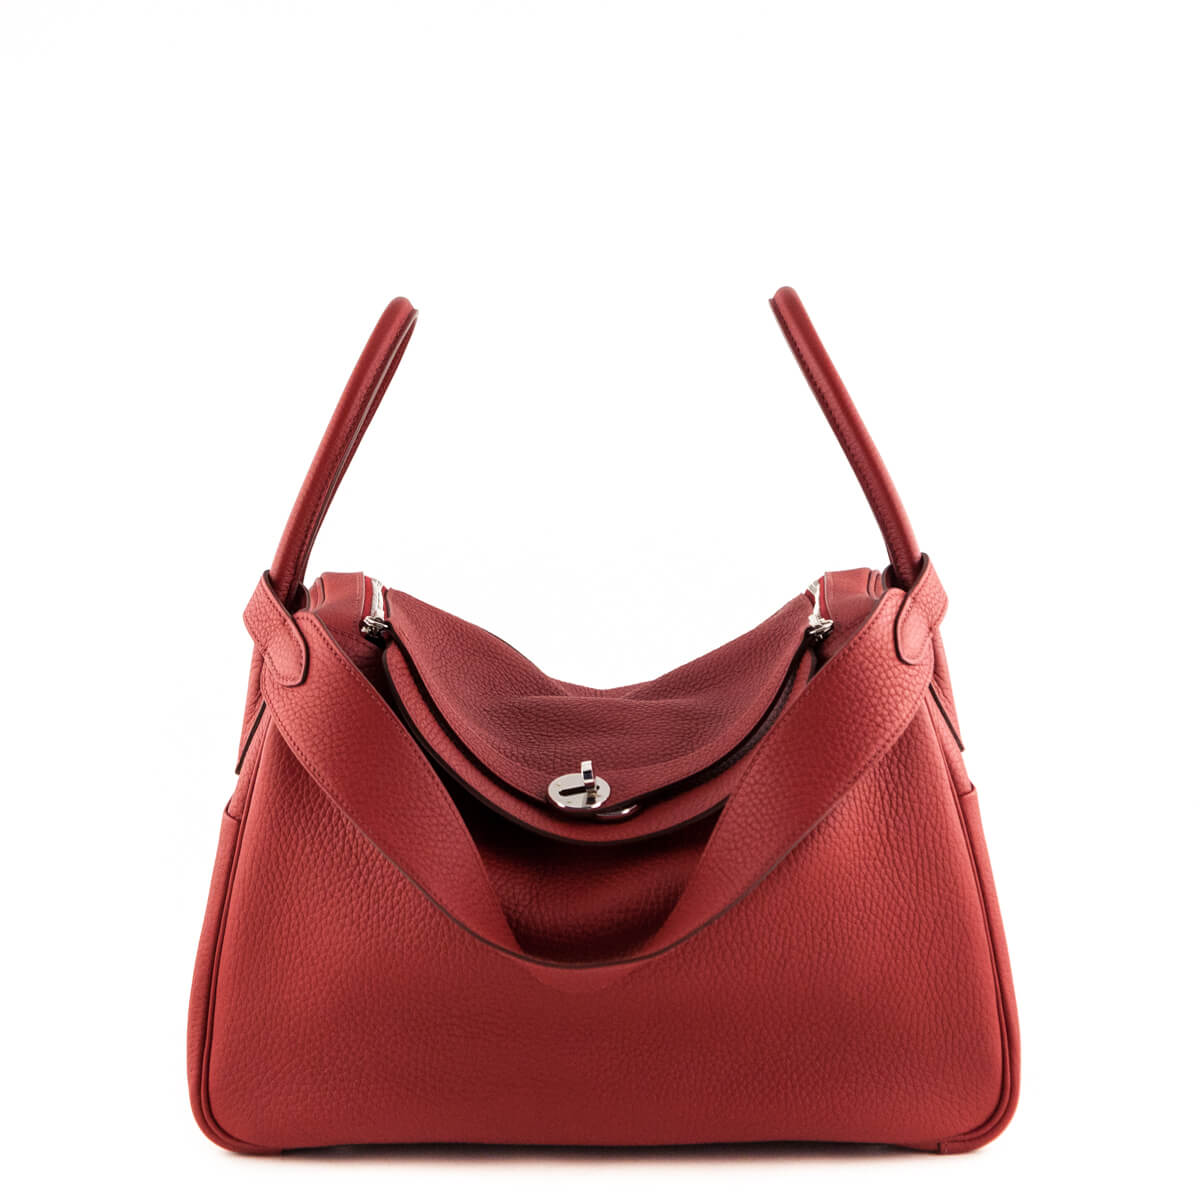 ffc58b8031937f Hermes Rouge Garance Clemence Lindy 34 - LOVE that BAG - Preowned Authentic  Designer Handbags ...